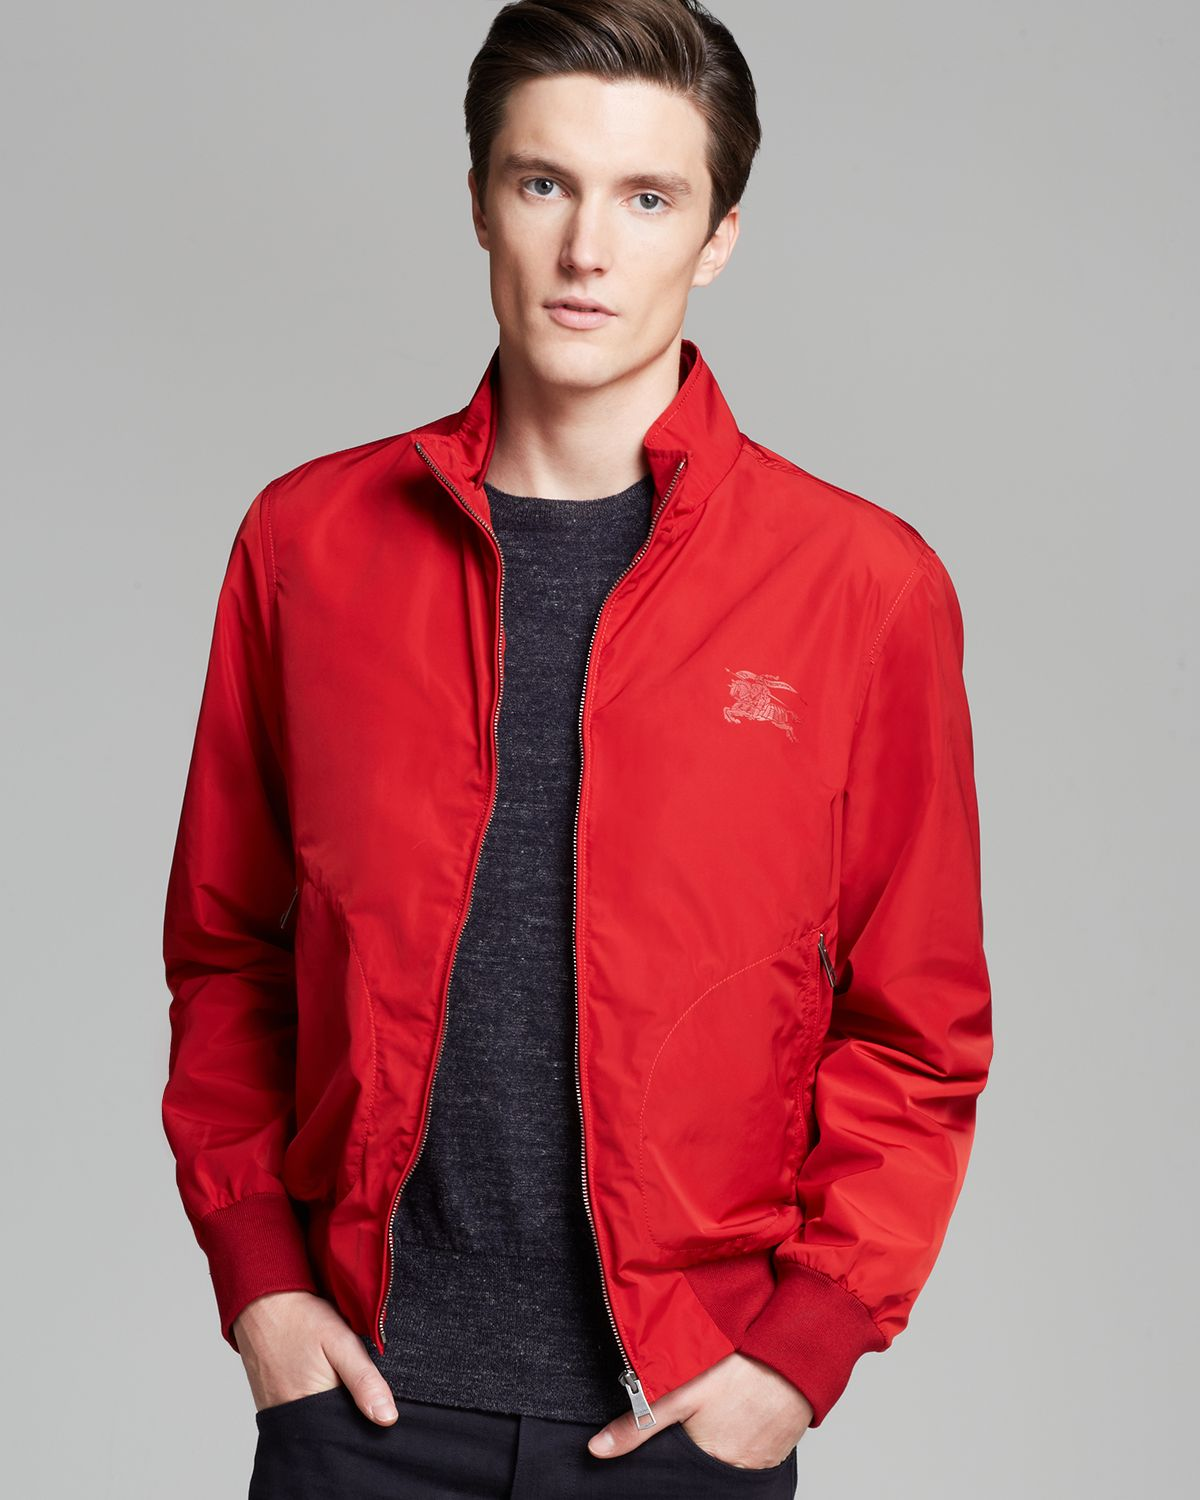 Mens jacket red